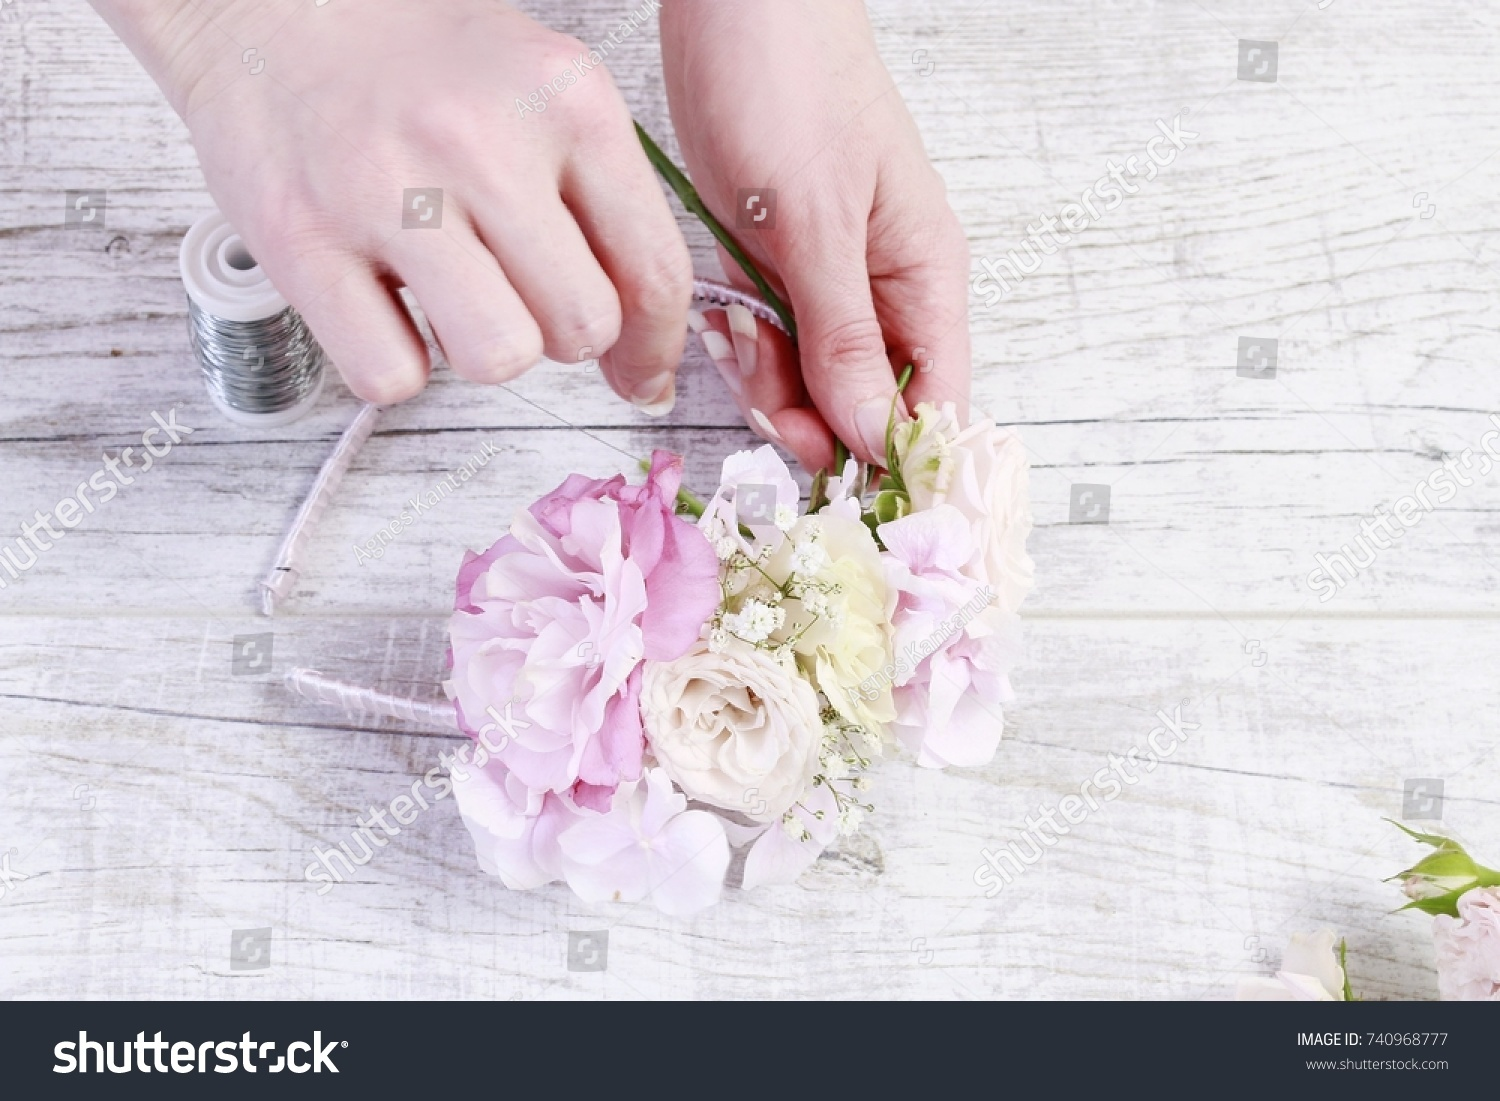 Florist Work How Make Flower Crown Stock Photo Edit Now 740968777